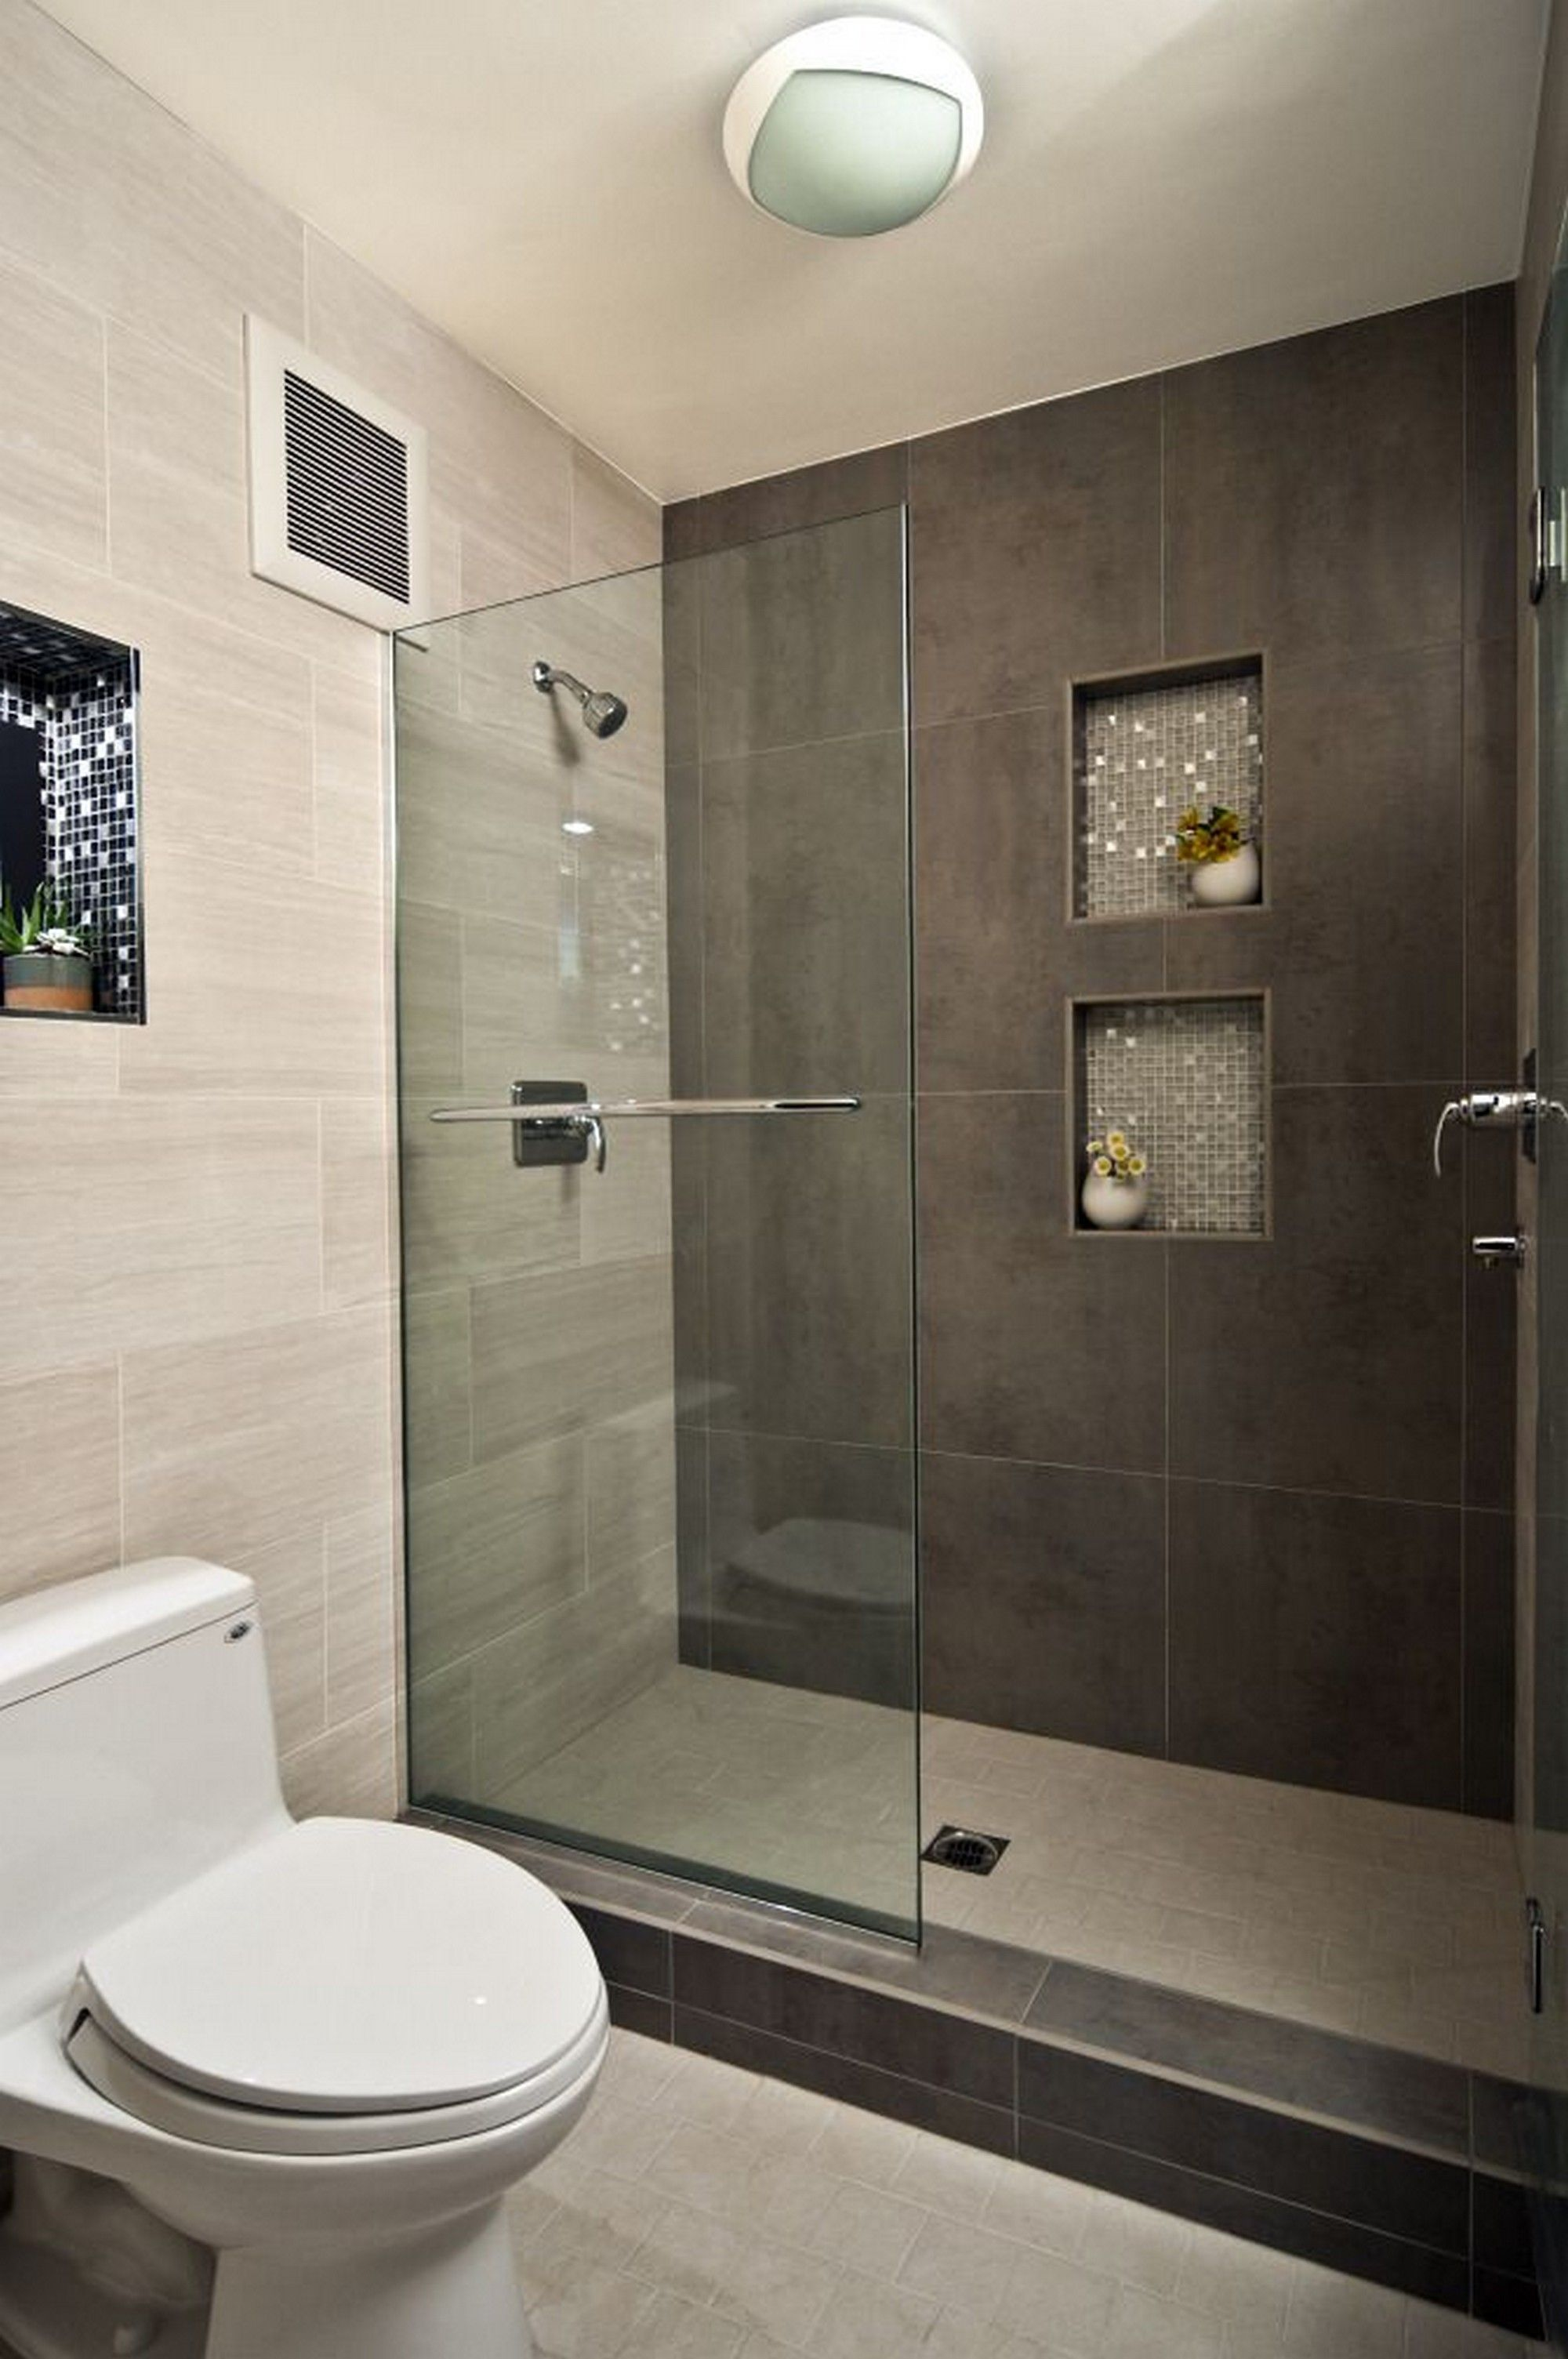 Superieur Small Bathroom Ideas With Walk In Shower